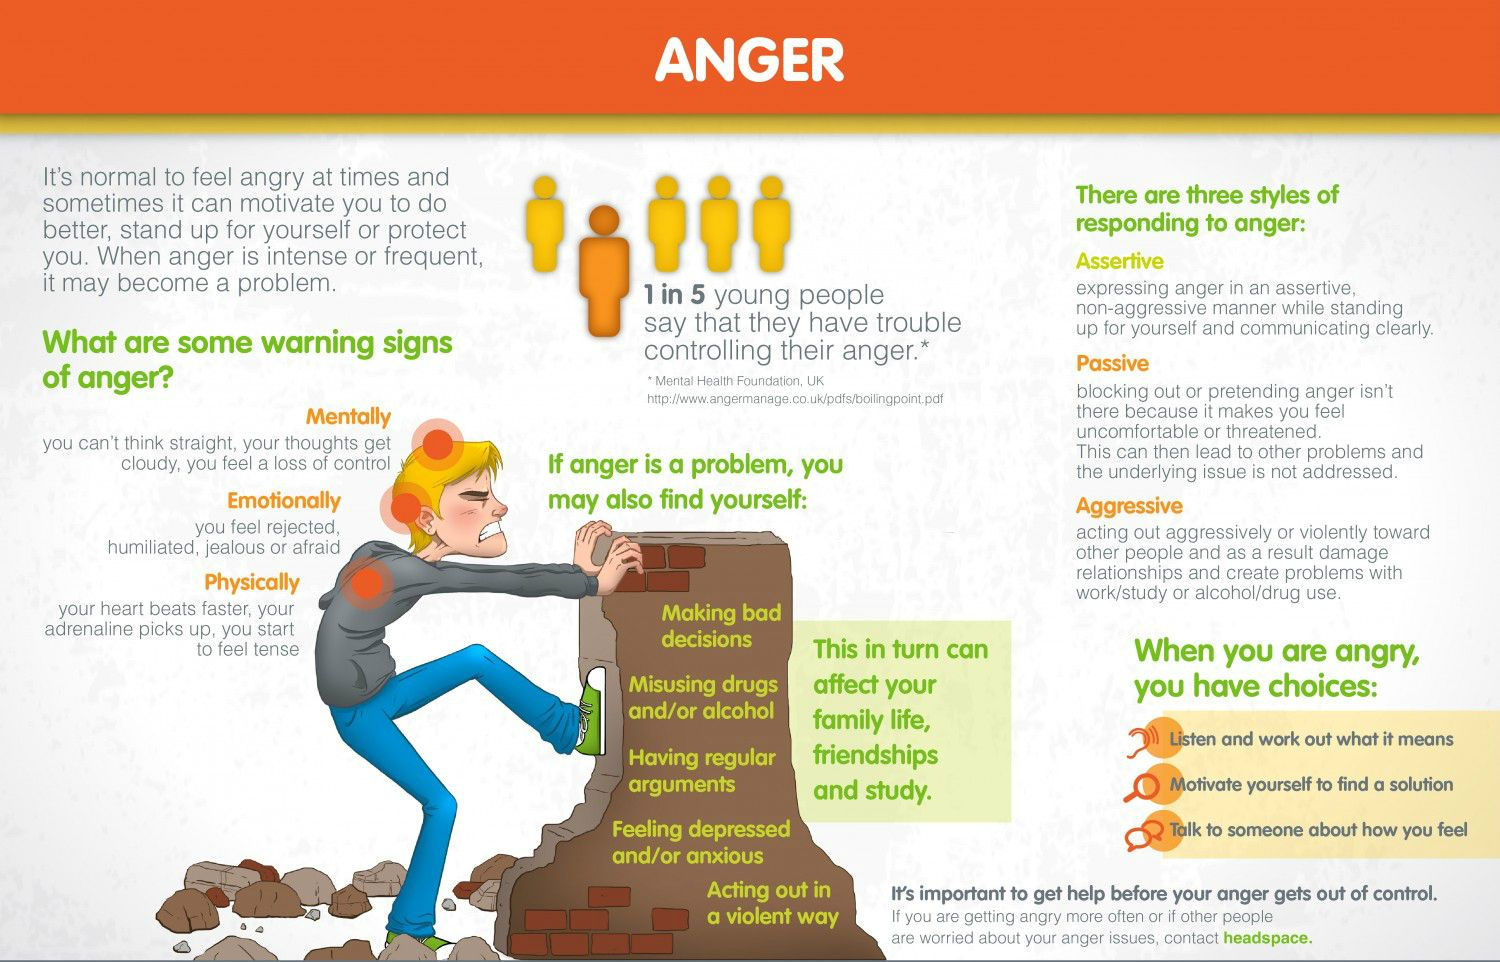 Some Warning Signs Of Anger And Ways You Can Respond To It